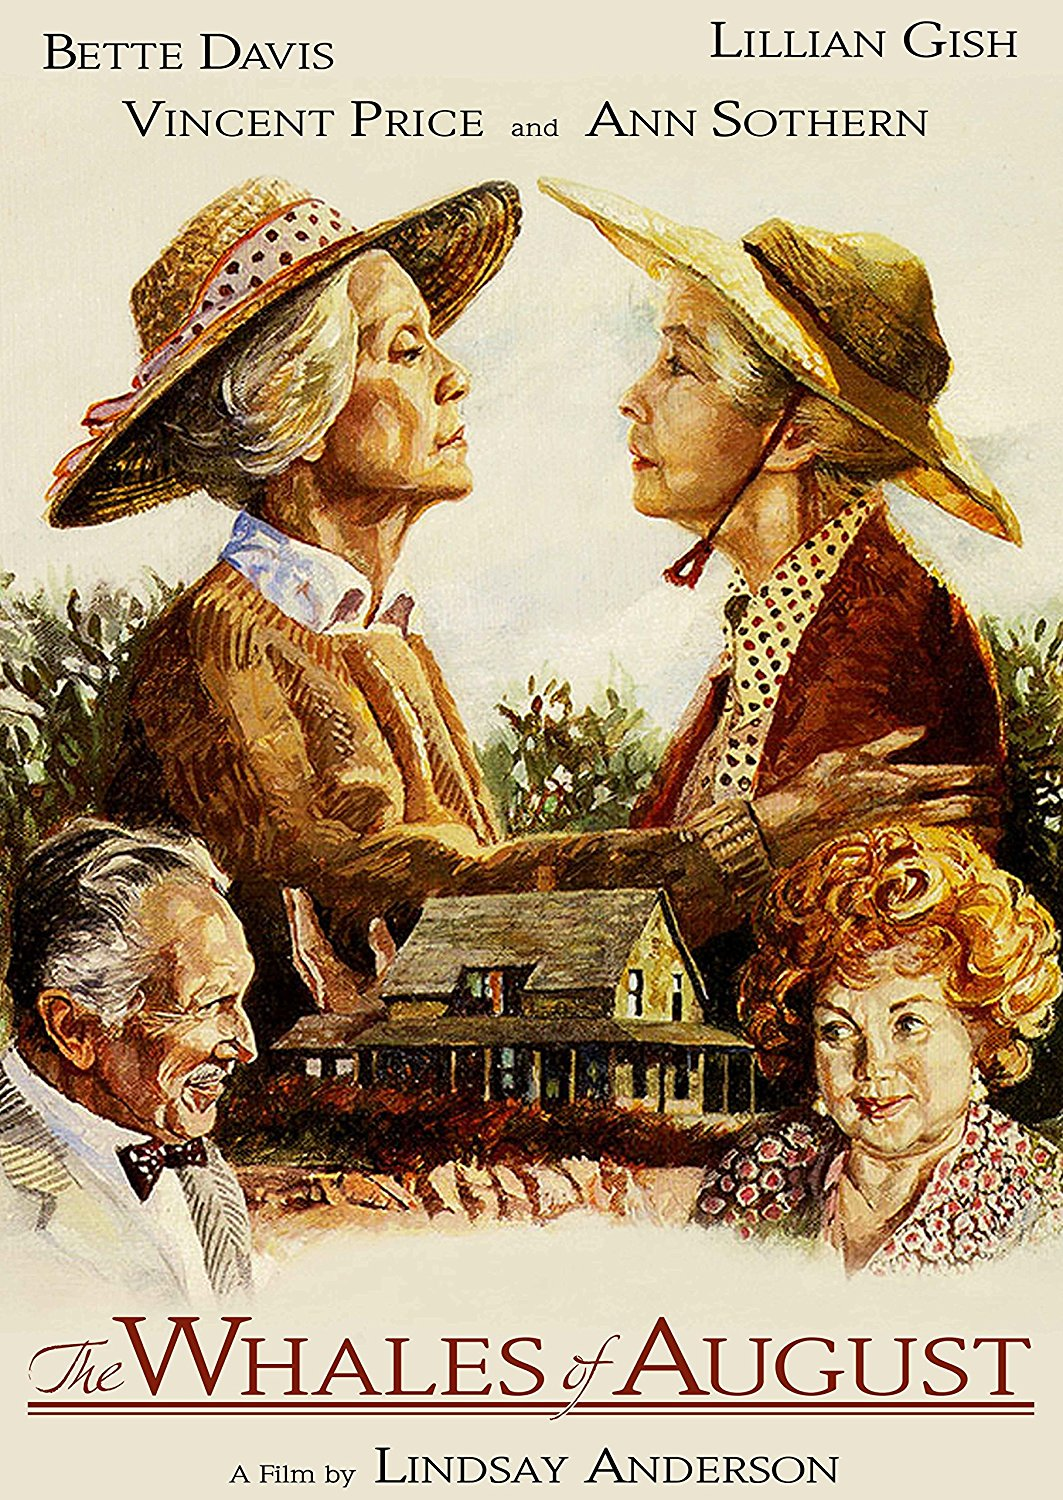 The Whales of August (1987) starring Lillian Gish, Bette Davis, Vincent Price, Ann Sothern